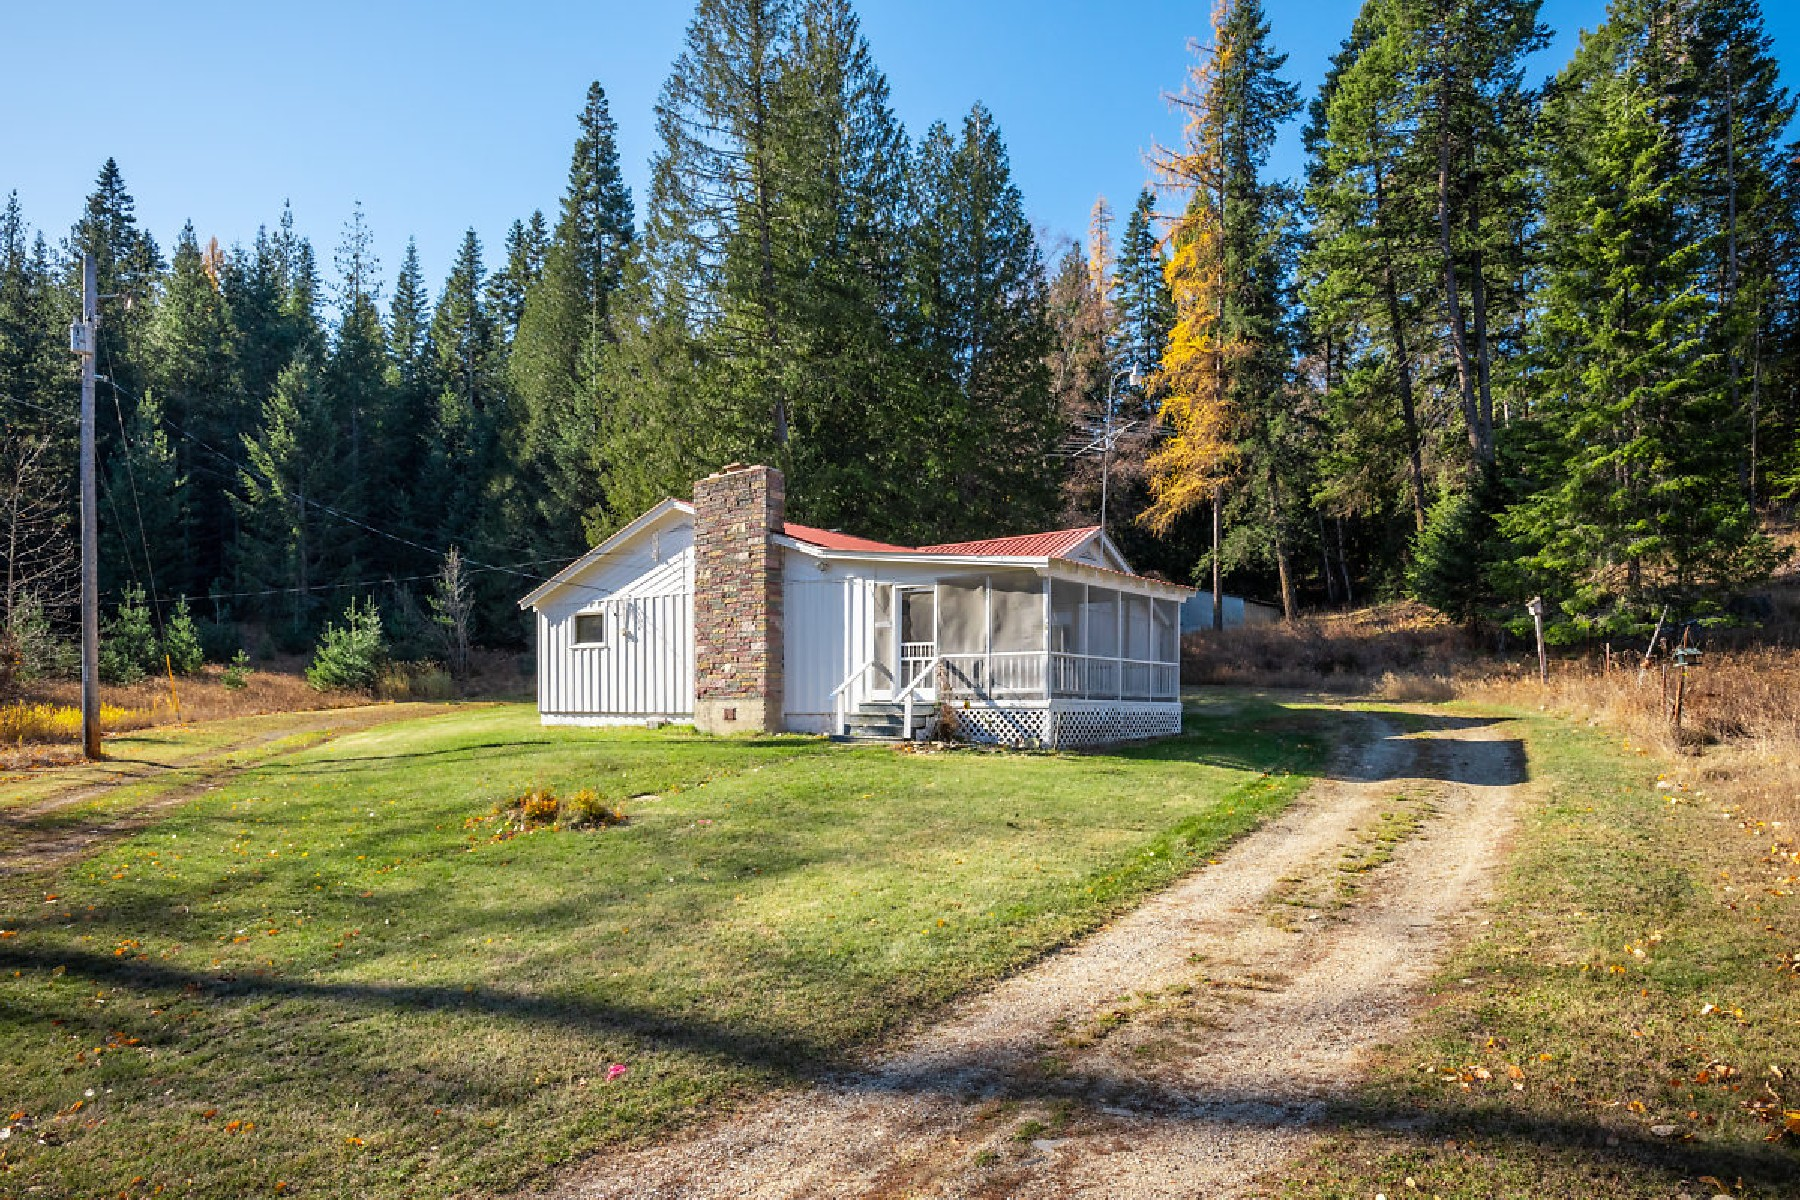 Single Family Homes for Sale at Vintage Farm Style Home 275 Springdale Gardens Priest River, Idaho 83856 United States